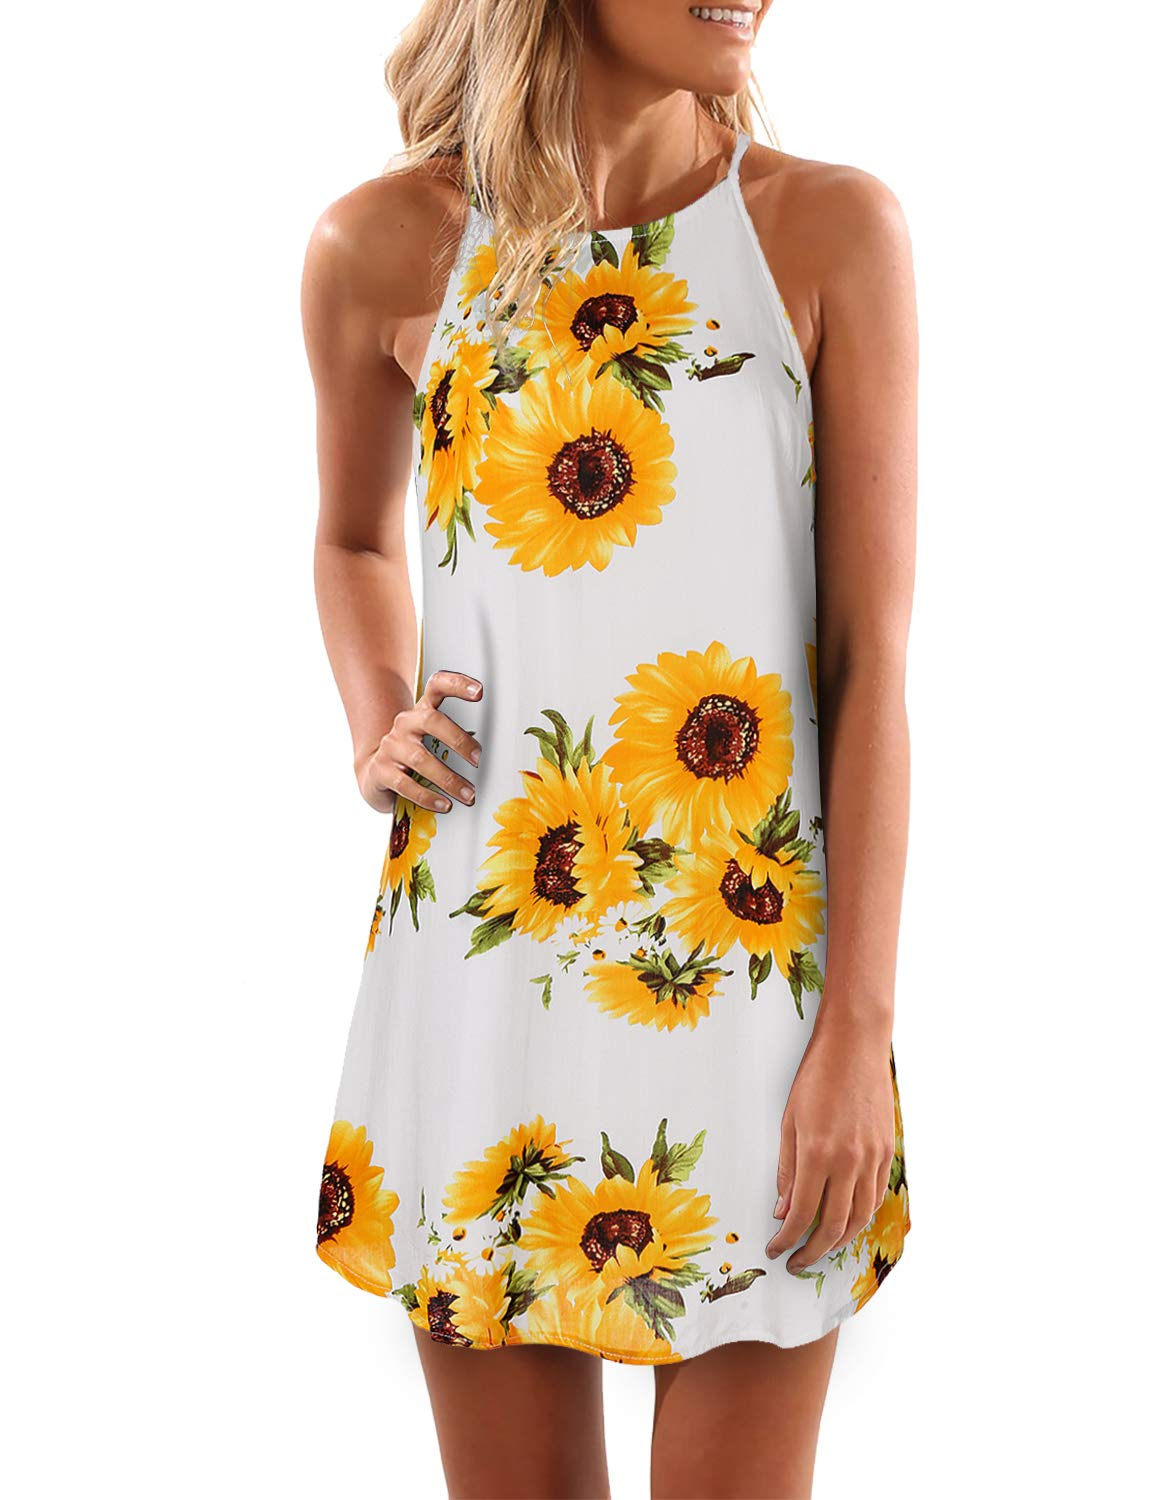 04c5d358e85 Blooming Jelly Women s Sleeveless Printed Flower Style Casual Floral ...